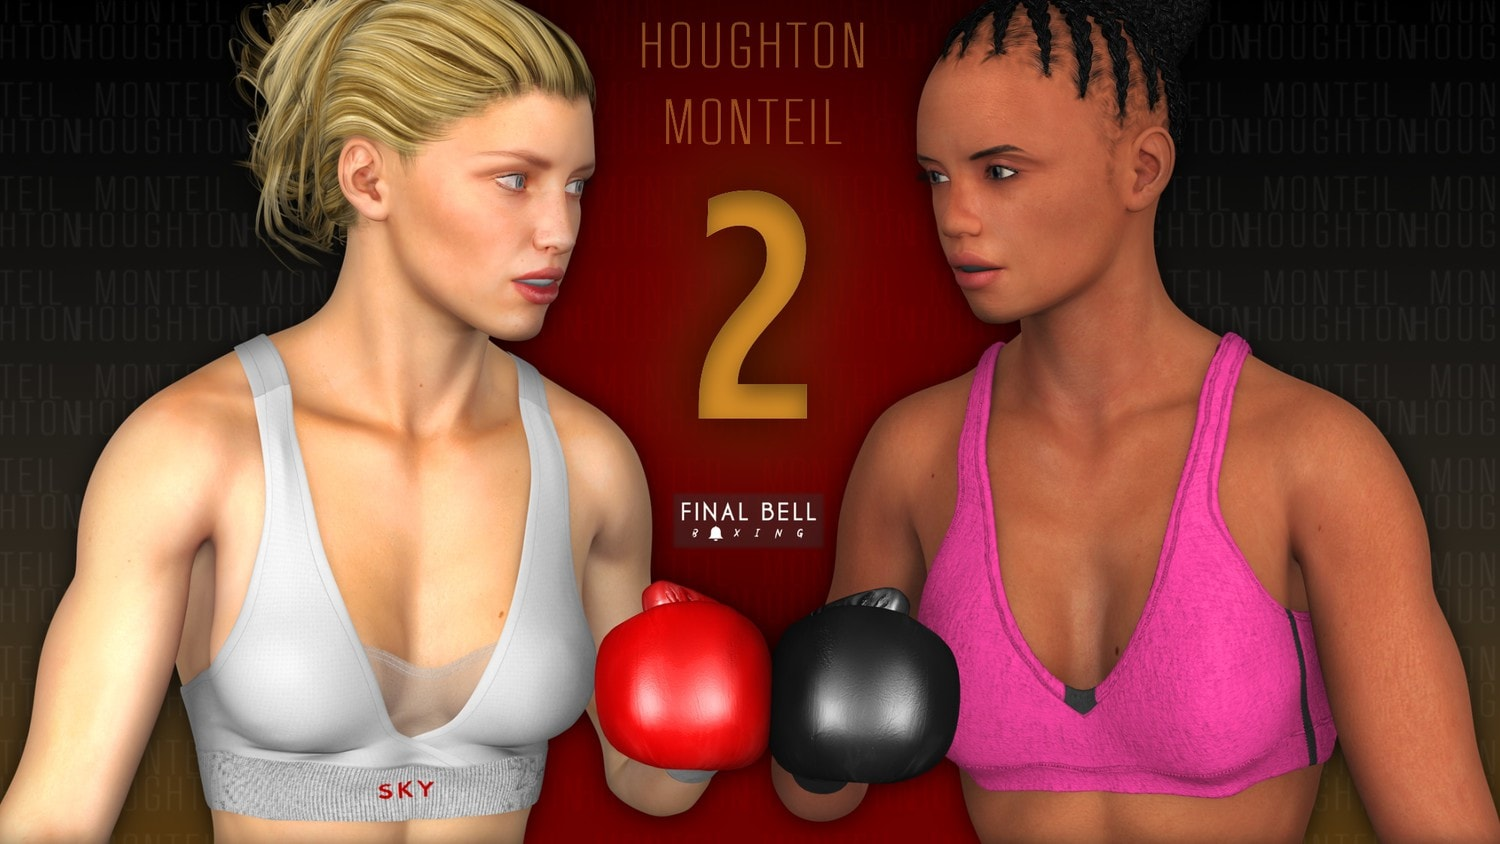 Sky Houghton Nadia Monteil rematch